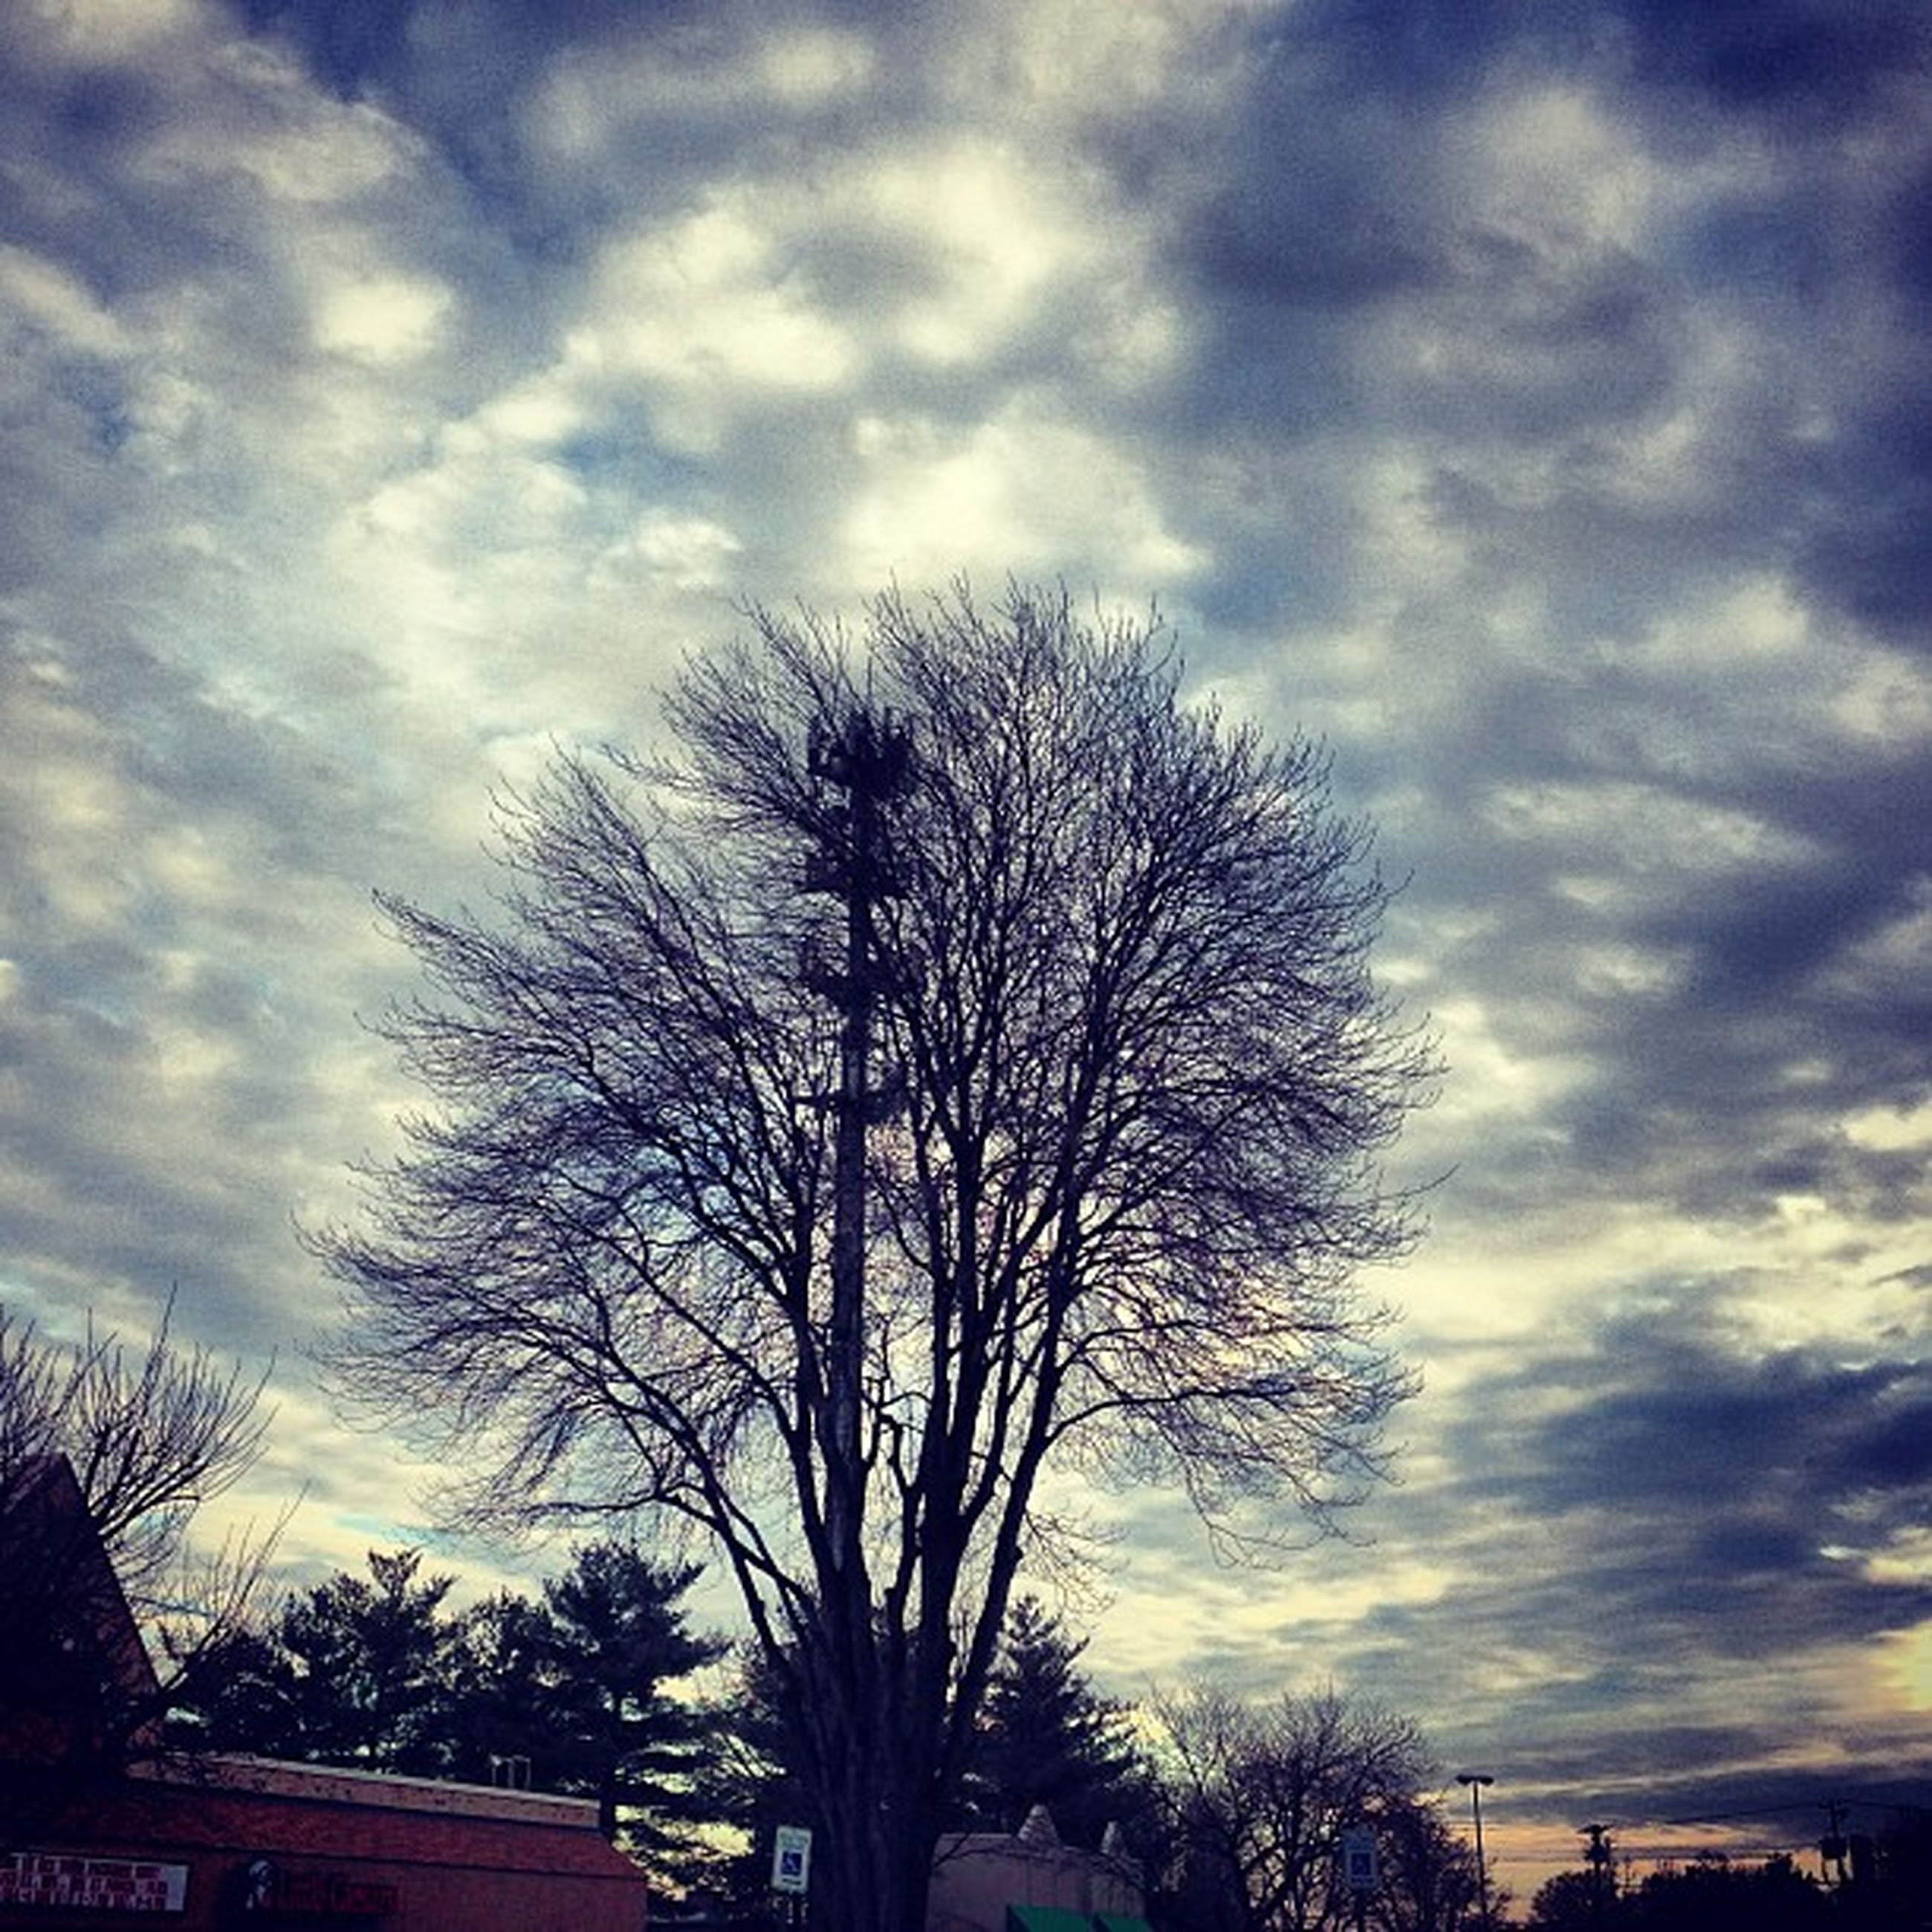 tree, sky, silhouette, cloud - sky, low angle view, bare tree, cloudy, tranquility, branch, beauty in nature, nature, cloud, sunset, scenics, tranquil scene, growth, overcast, tree trunk, dusk, outdoors